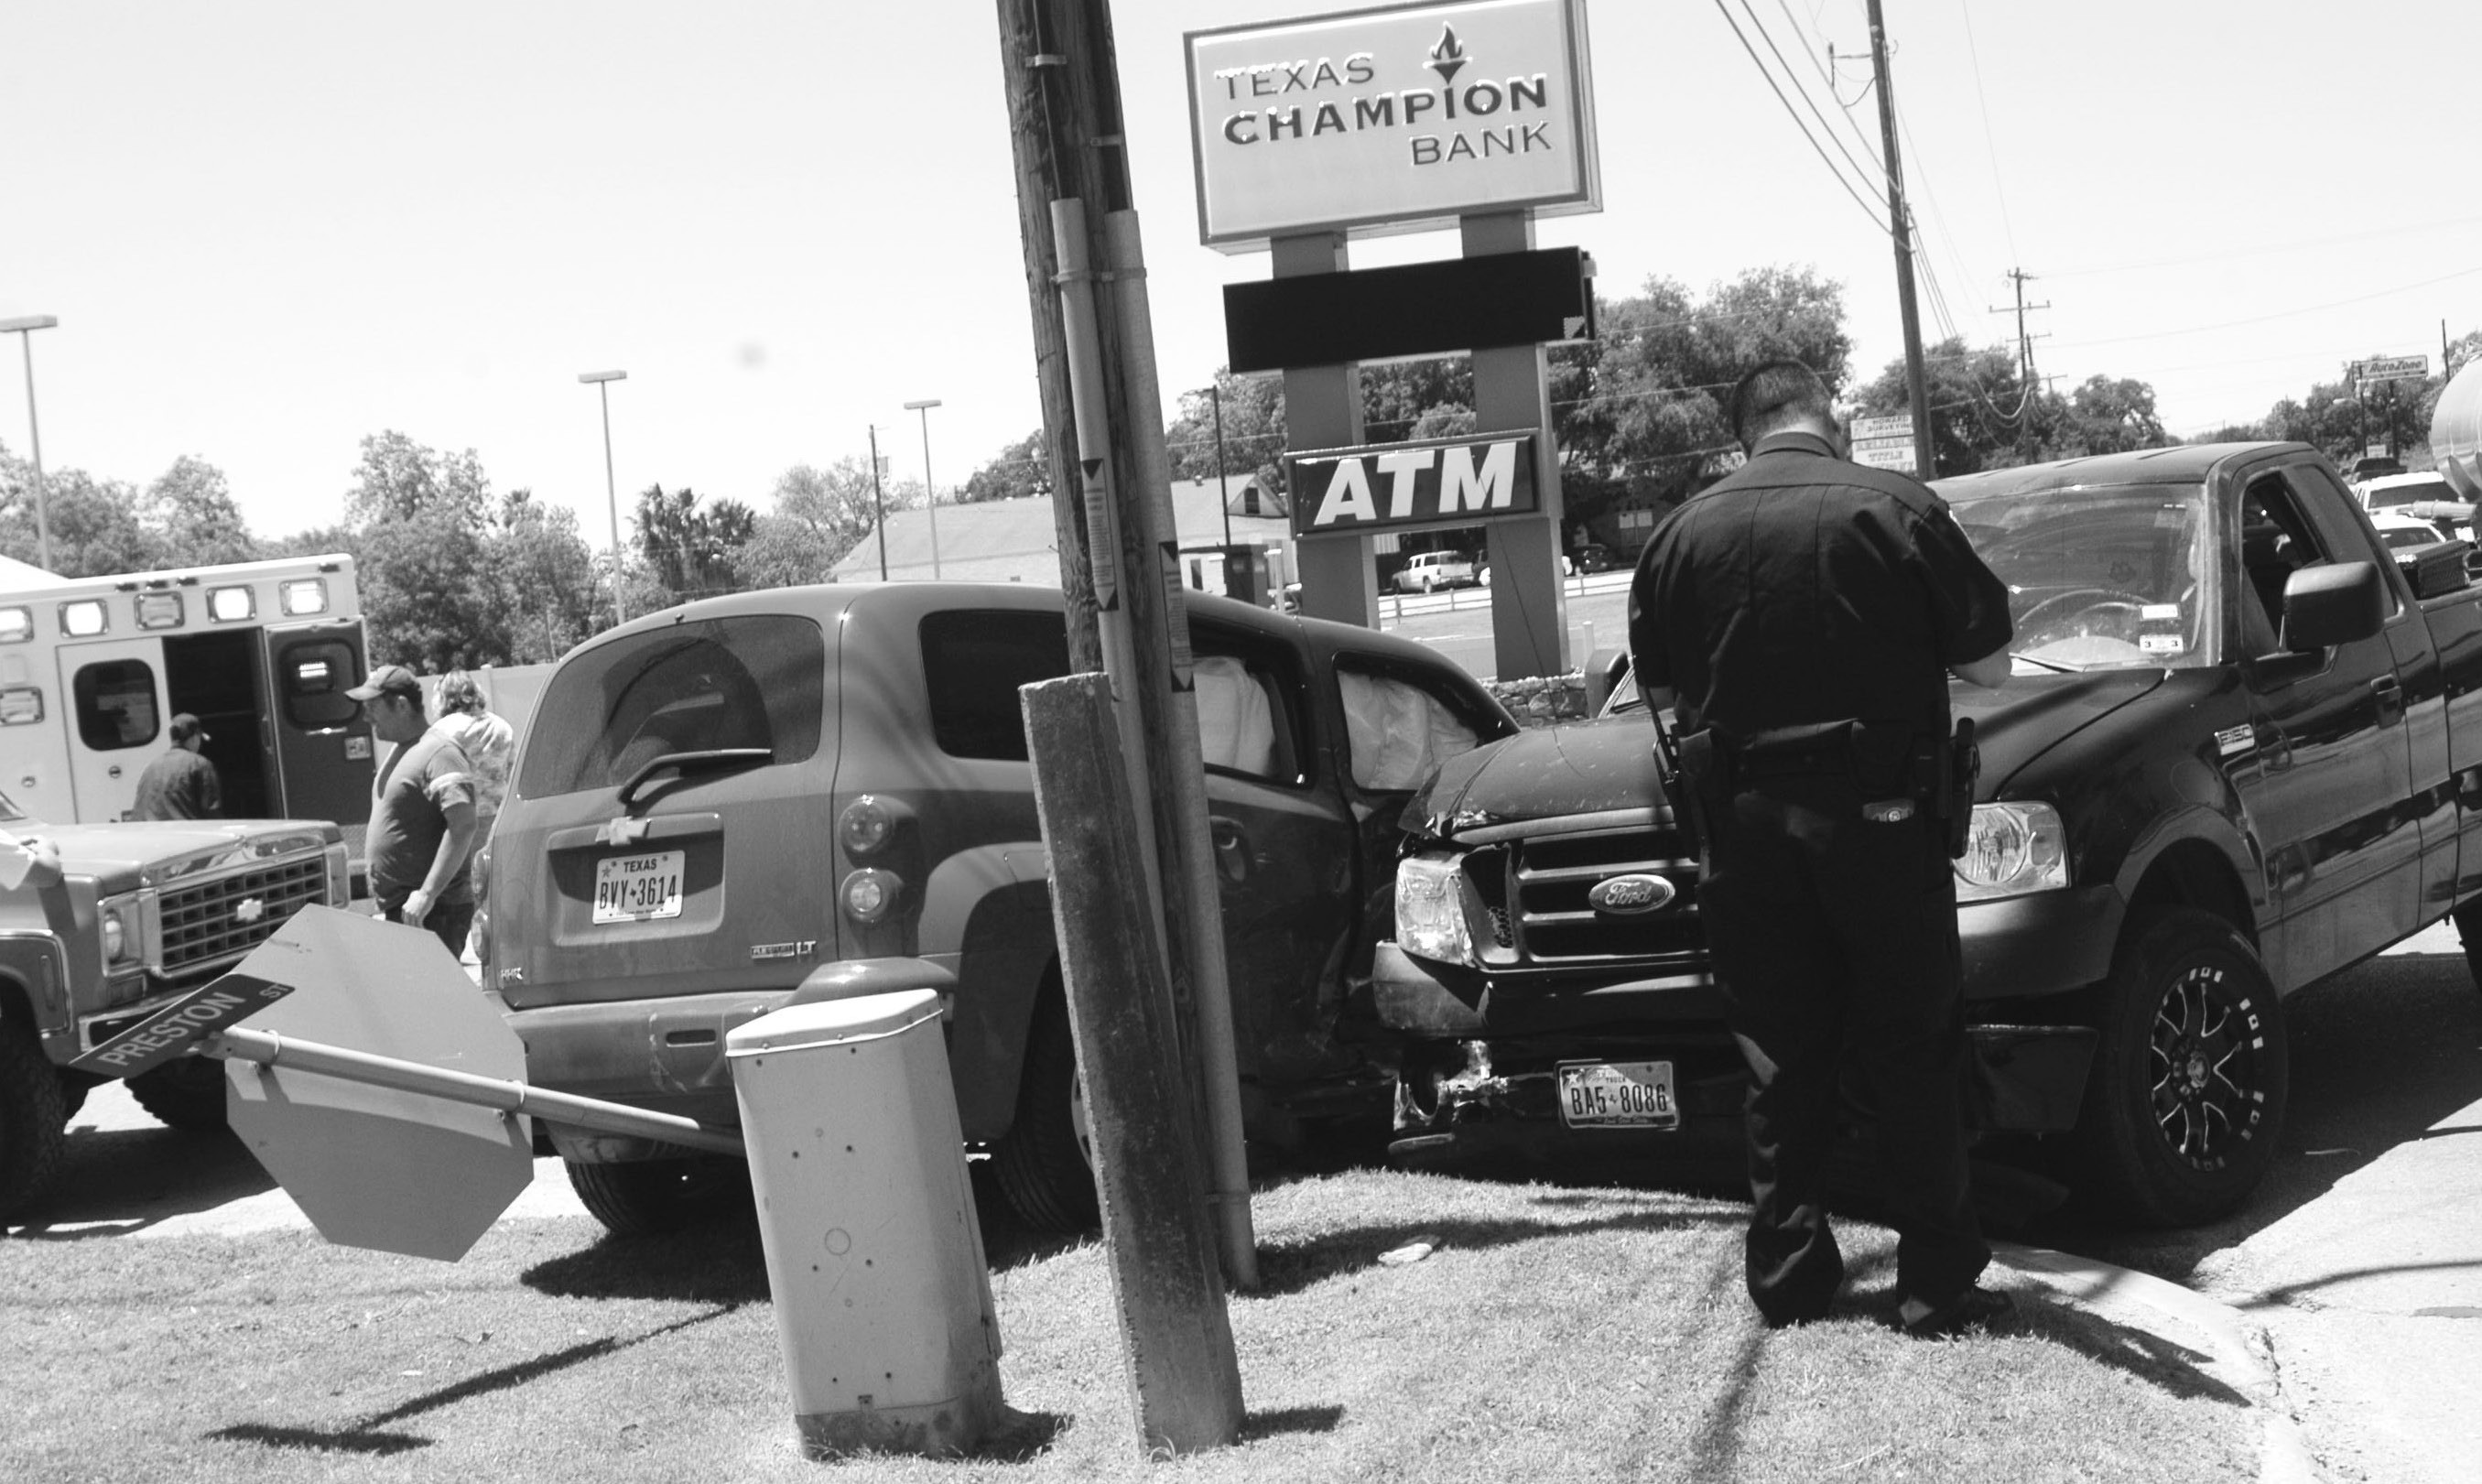 This wreck occurred Friday afternoon, May 3rd, at the corner of Preston and Oaklawn in front of HEB. There were no known injuries at the time of the accident.